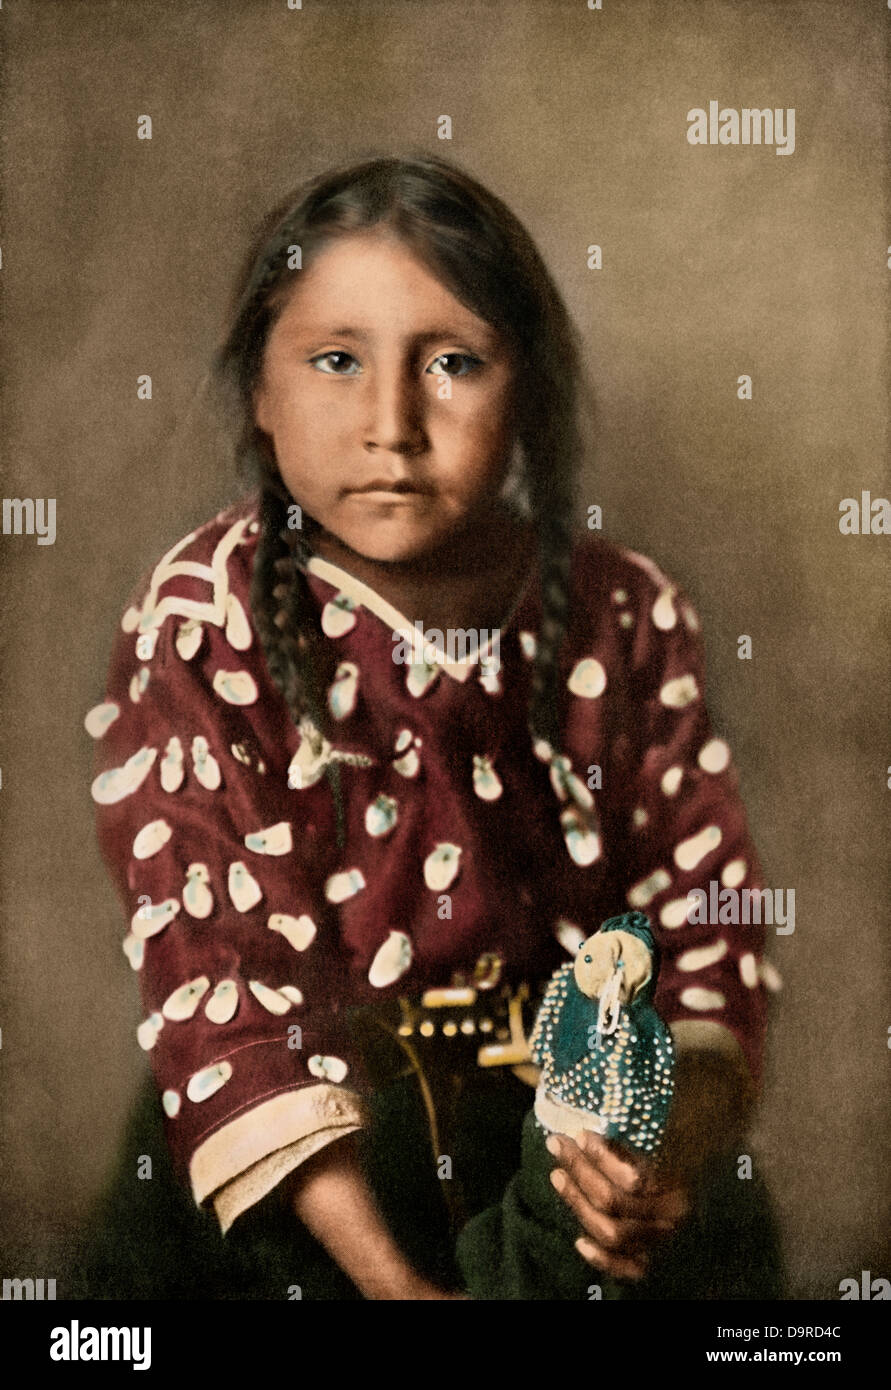 Glydis Littlenest Crow Indian girl, ou des promenades-a-Sorrel-Horse, vers 1900. La main, d'une photographie Photo Stock